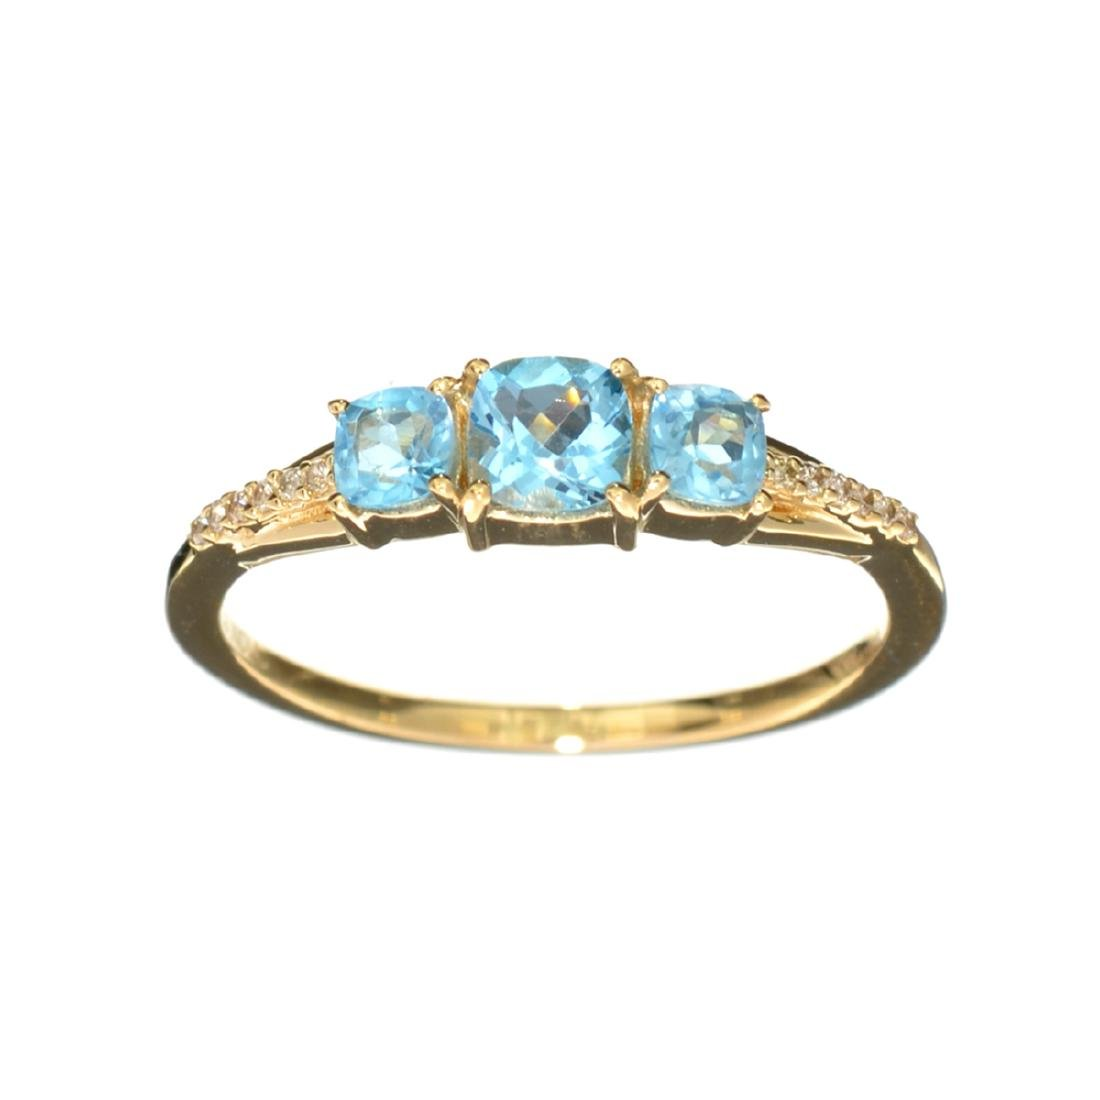 14KT Gold 0.78CT Square Cushion Cut Blue Topaz and